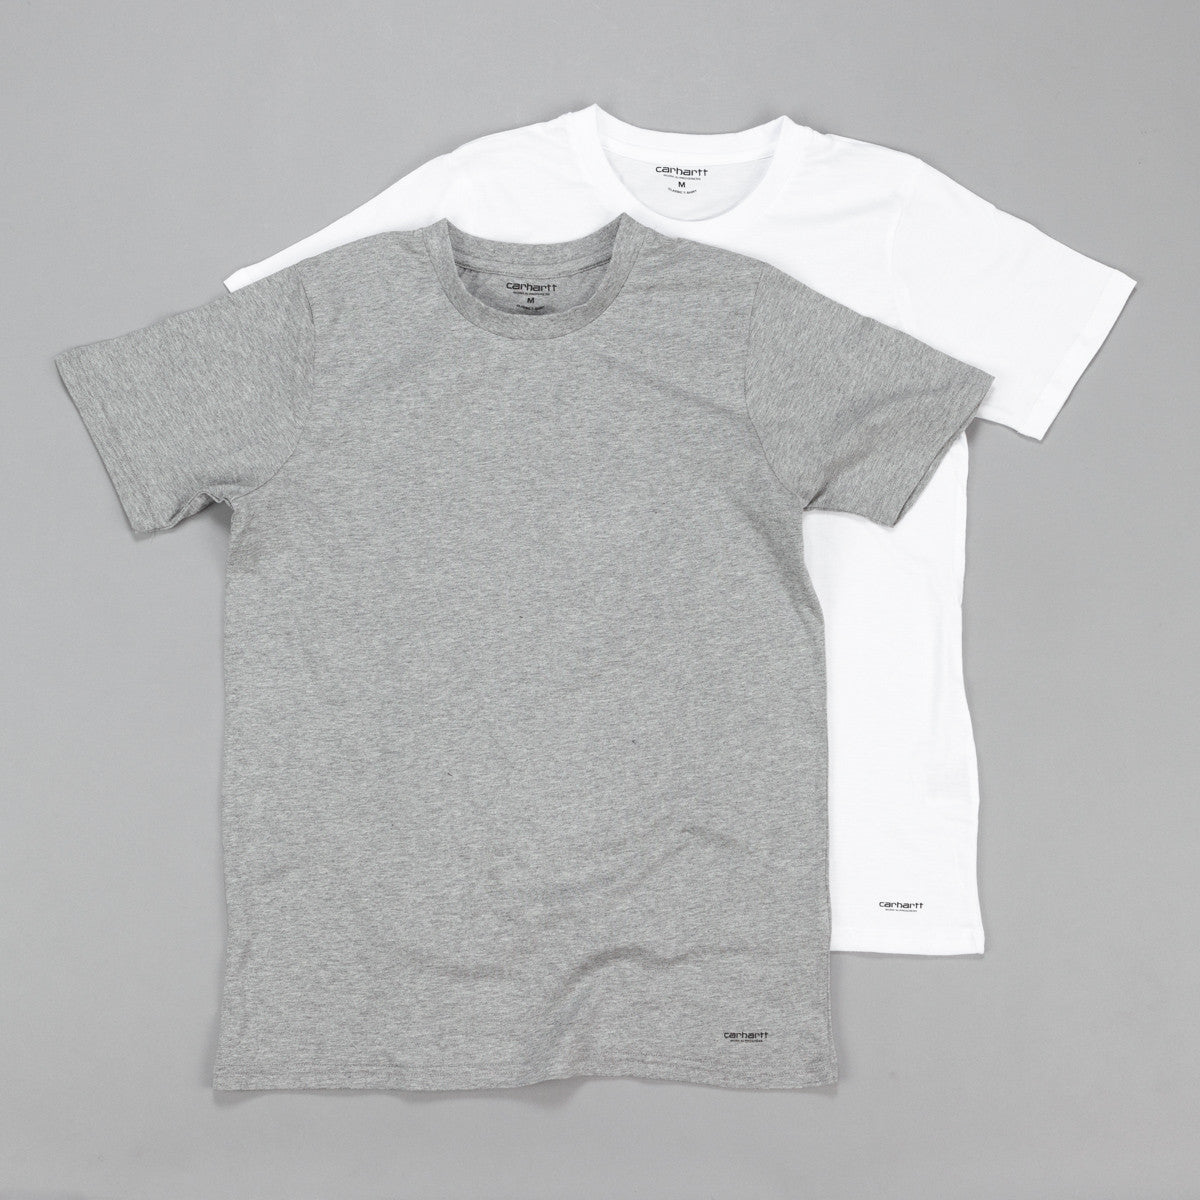 Carhartt Standard T Shirt - White / Grey Heather